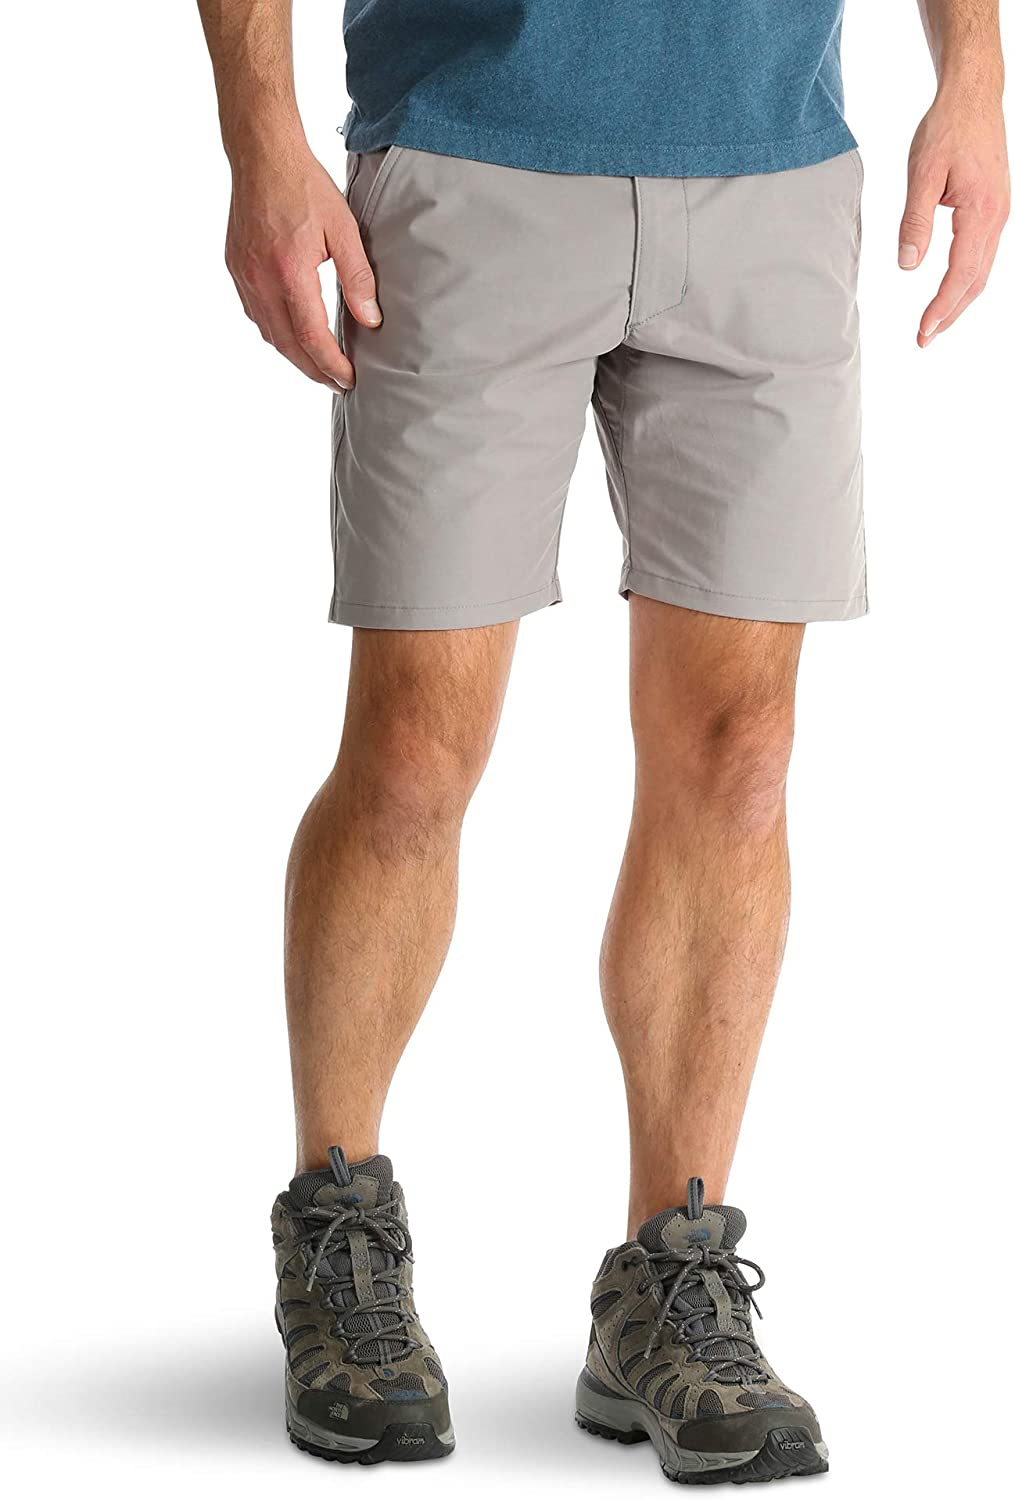 Wrangler Light Gray Outdoor Performance Relaxed Fit at Knee Flex Cargo Shorts